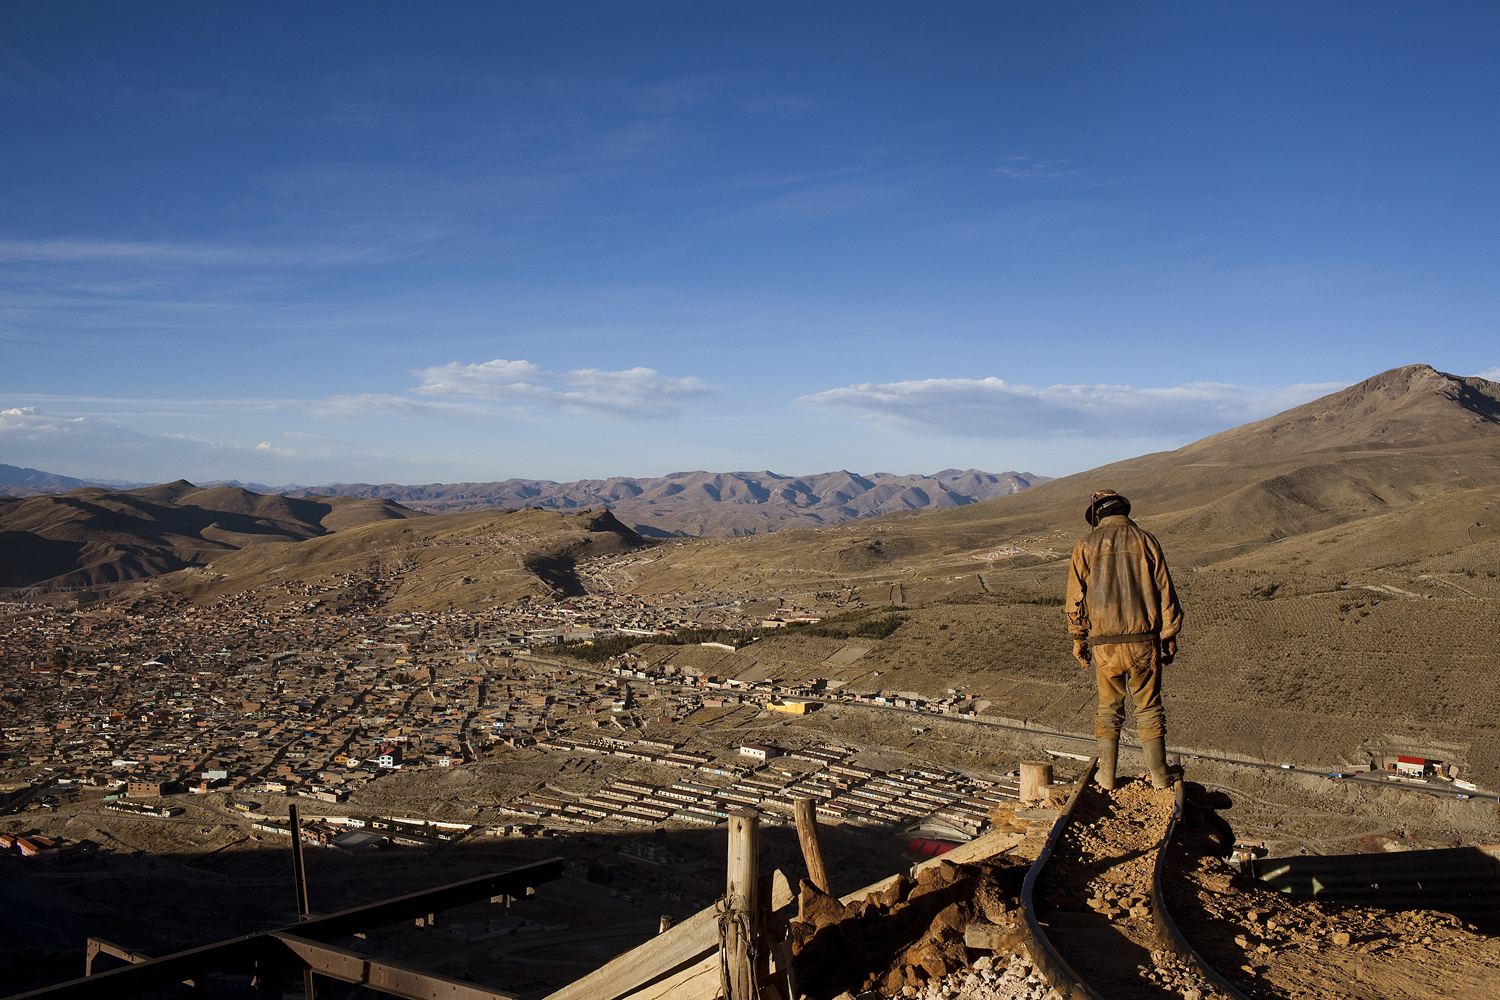 From the series: Cerro Rico  - The Mountain That Eats MenA miner stands on the edge of a mineral off-loading track outside an active mine on the mountain Cerro Rico in Potosí, Bolivia.